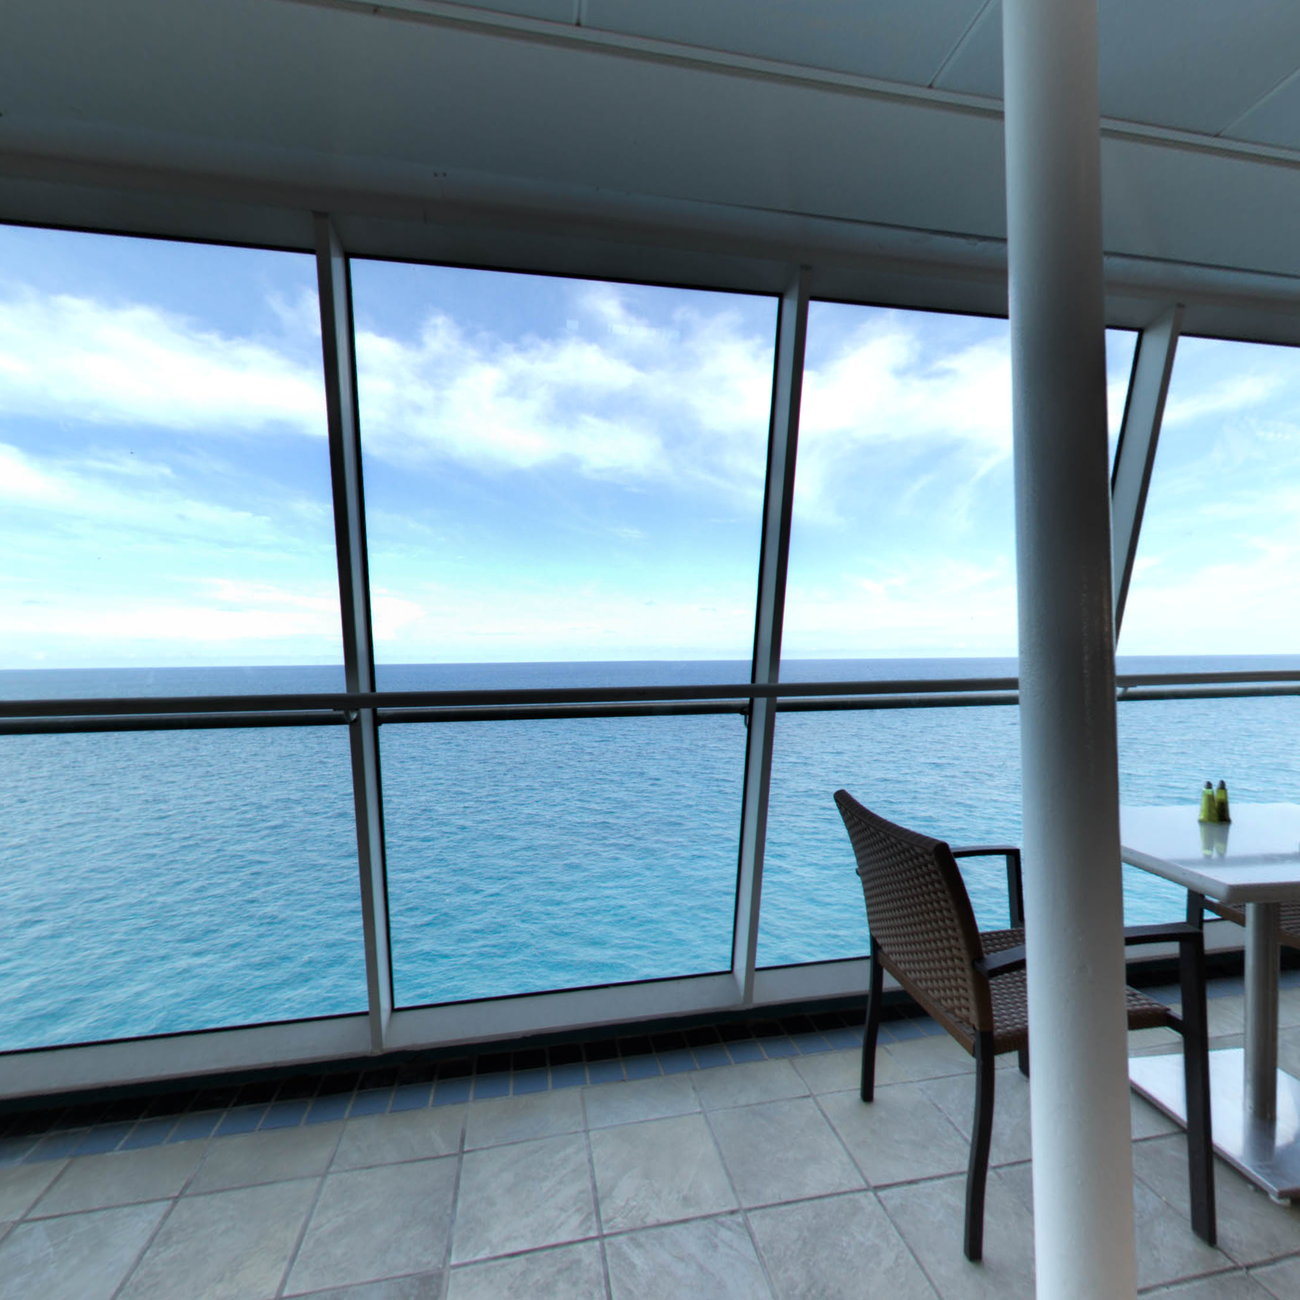 Panorama of Park Cafe on Enchantment of the Seas